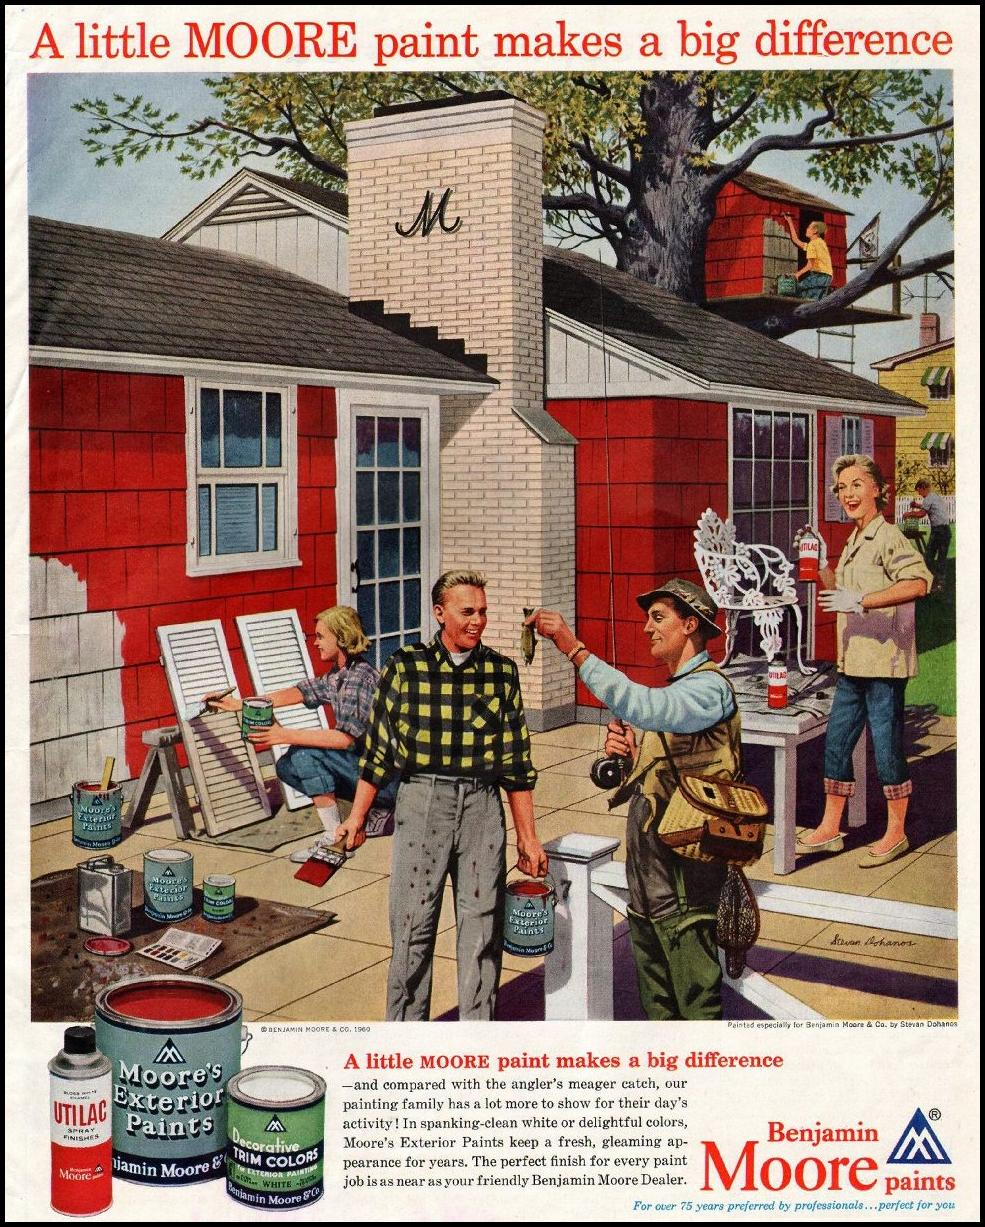 BENJAMIN MOORE PAINTS SATURDAY EVENING POST 06/04/1960 p. 111